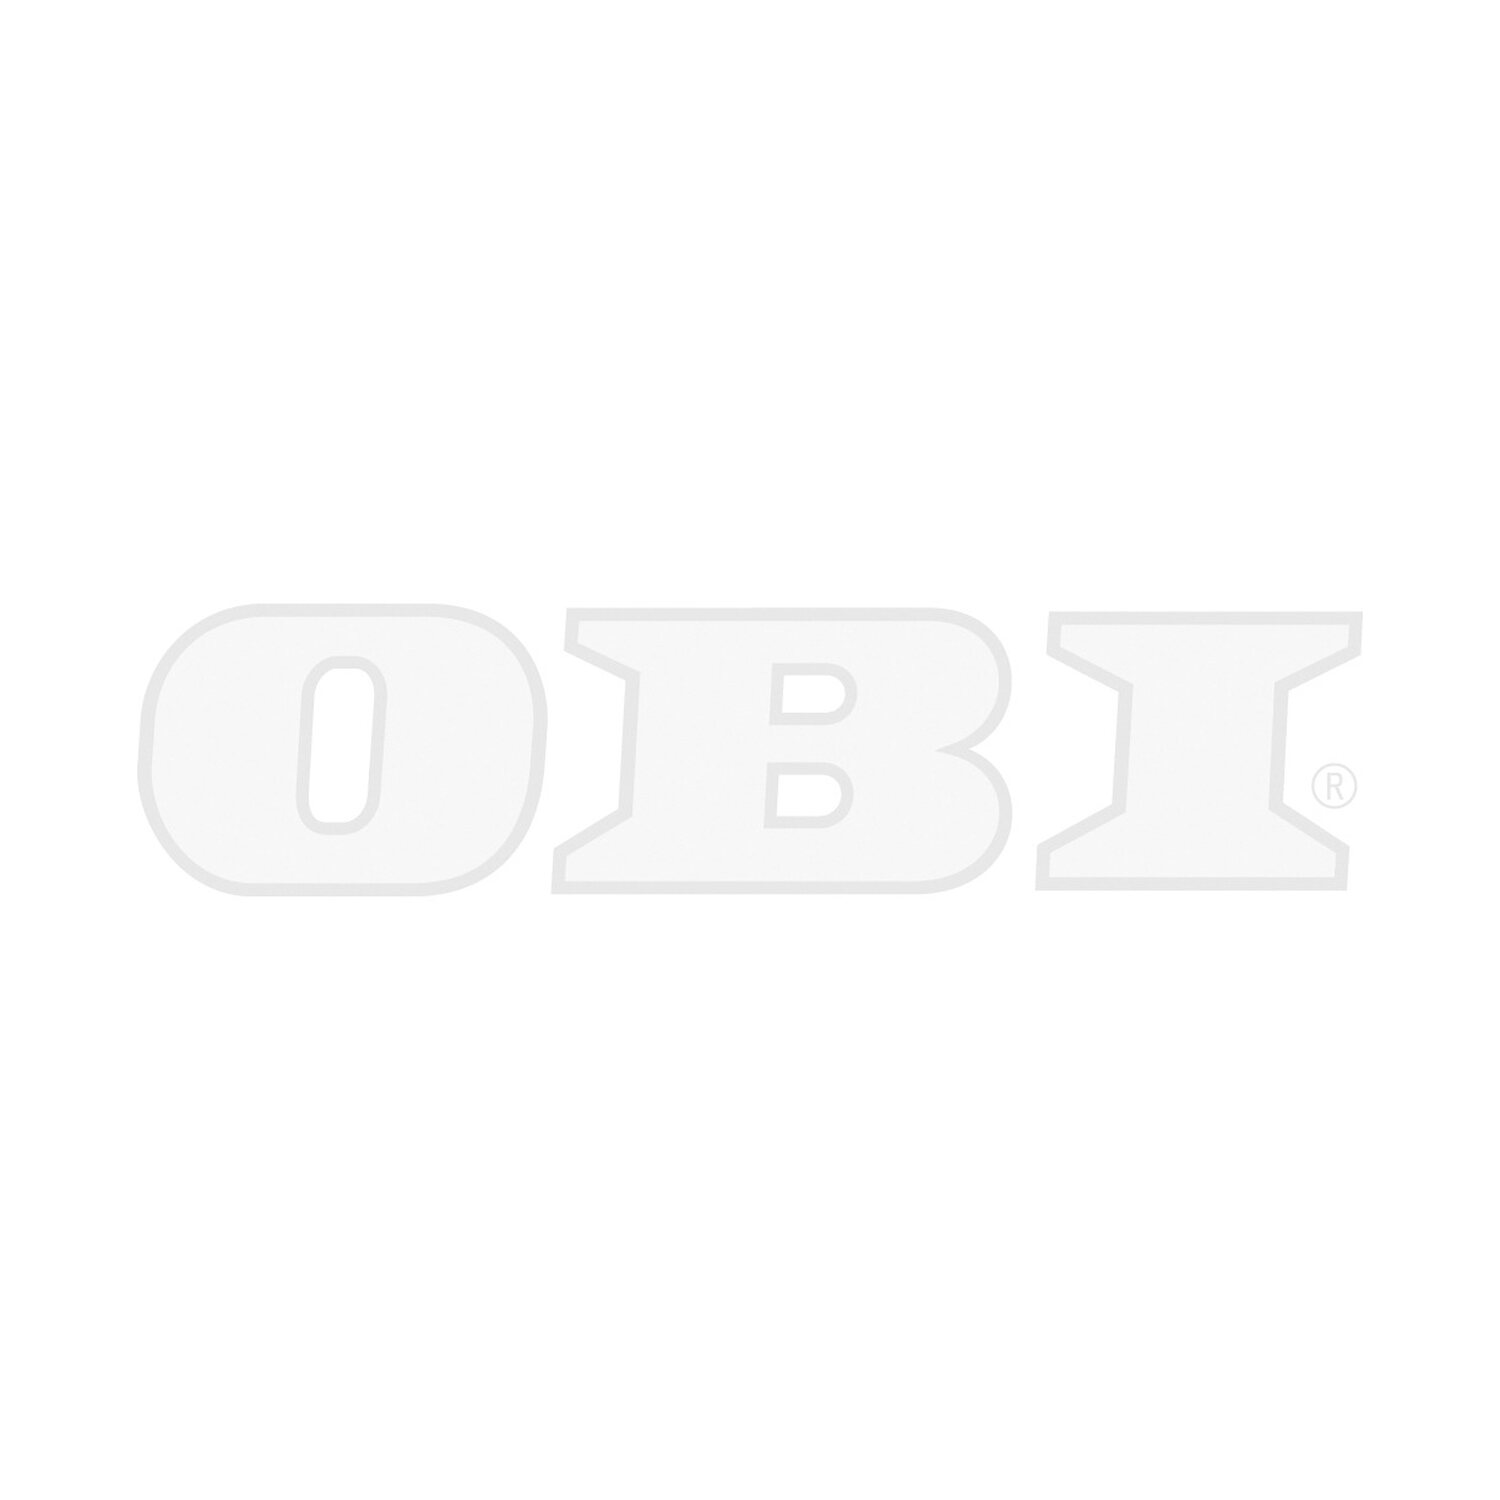 Summer fun solar abdeckplane f r pools 450 cm kaufen bei obi for Abdeckplane obi